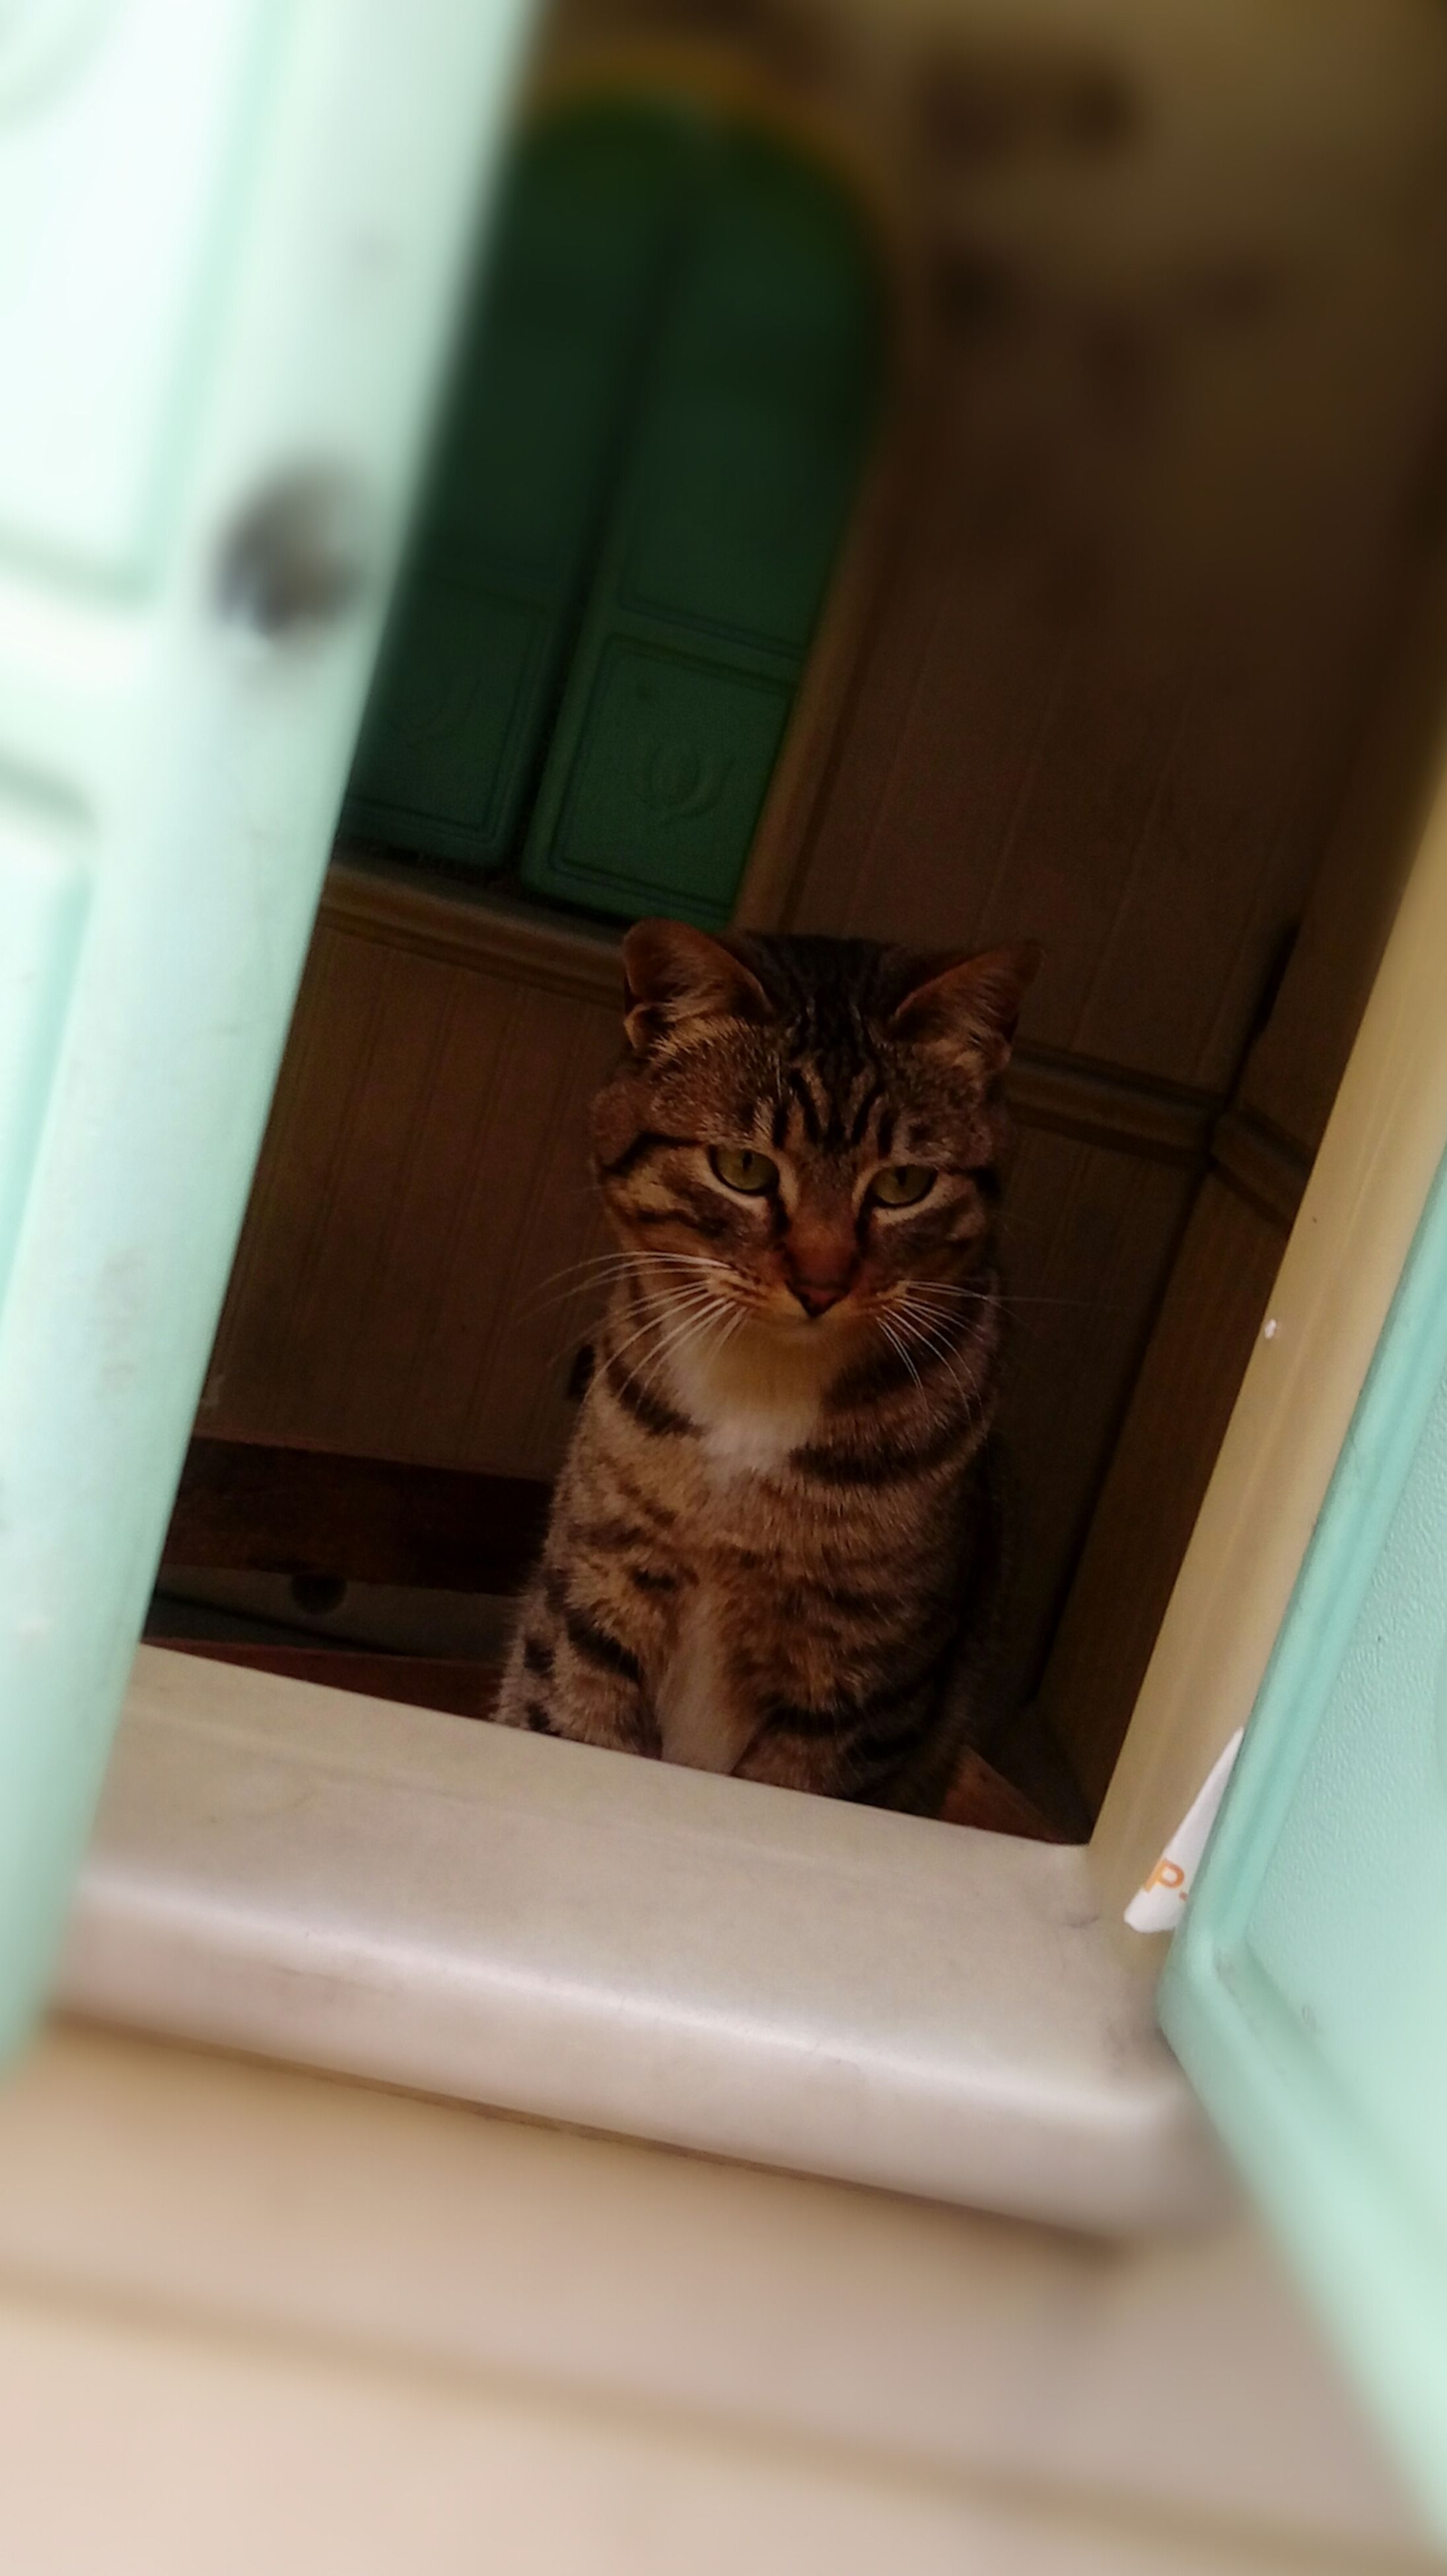 domestic cat, pets, domestic animals, animal themes, one animal, indoors, mammal, no people, feline, tabby cat, close-up, day